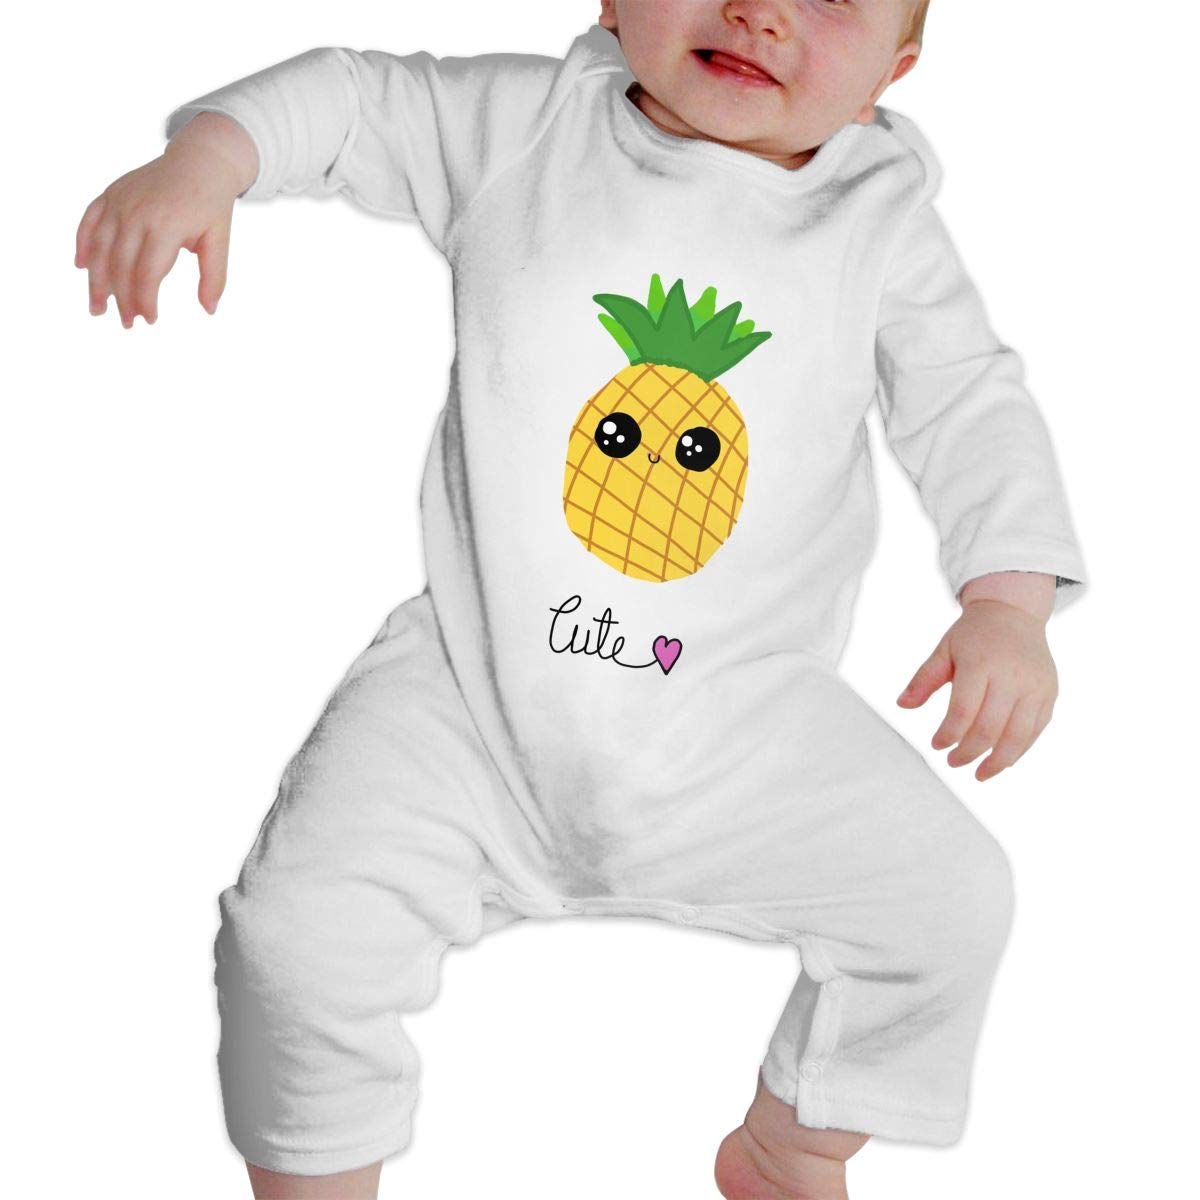 KAYERDELLE Cute Pineapple Long Sleeve Unisex Baby Bodysuits for 6-24 Months Toddler